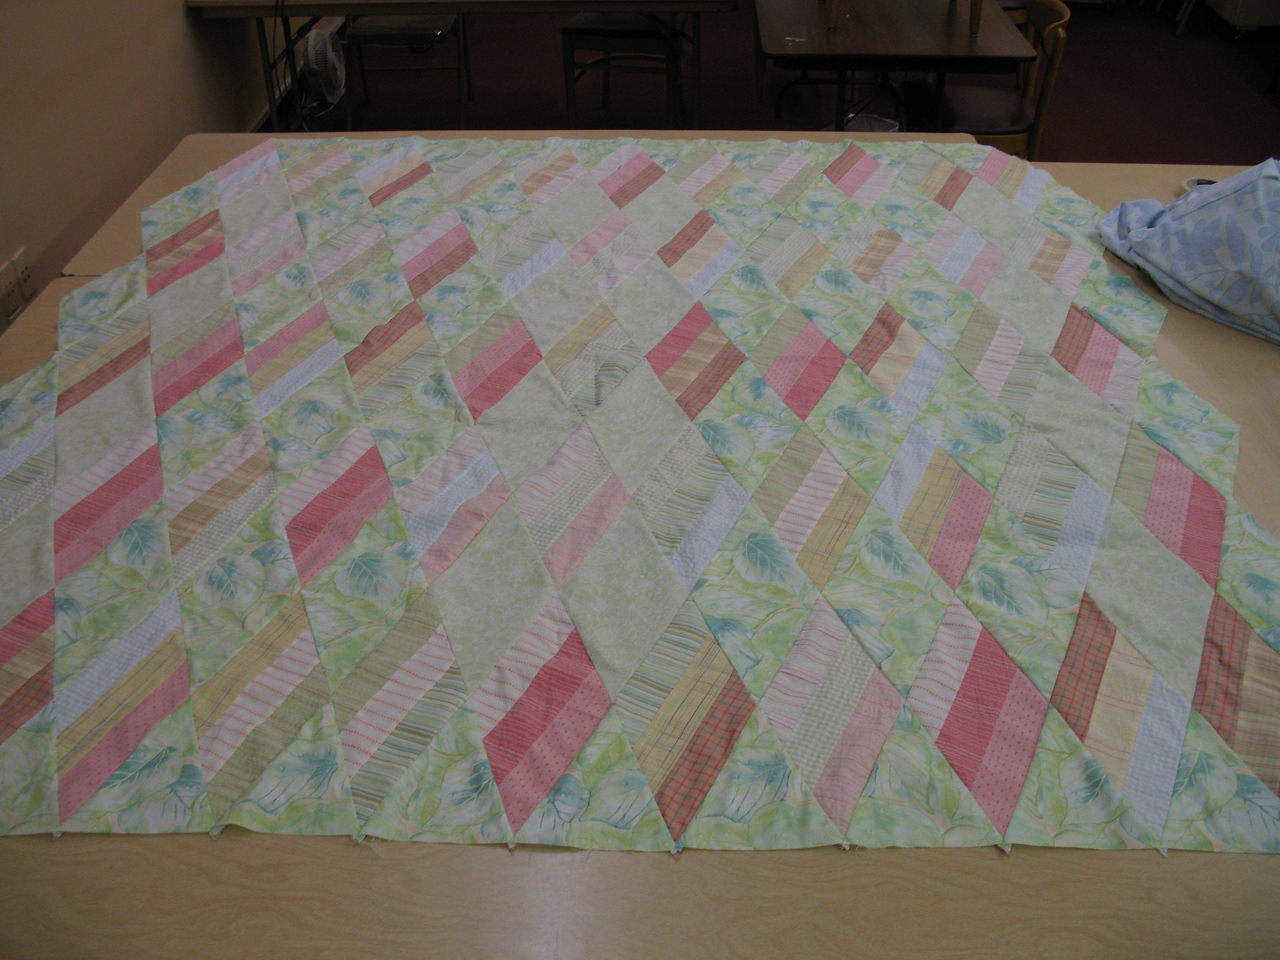 A quilt top I finished and ready to pin the layers together. It is laying on 3 eight foot tables. It is around a full size.